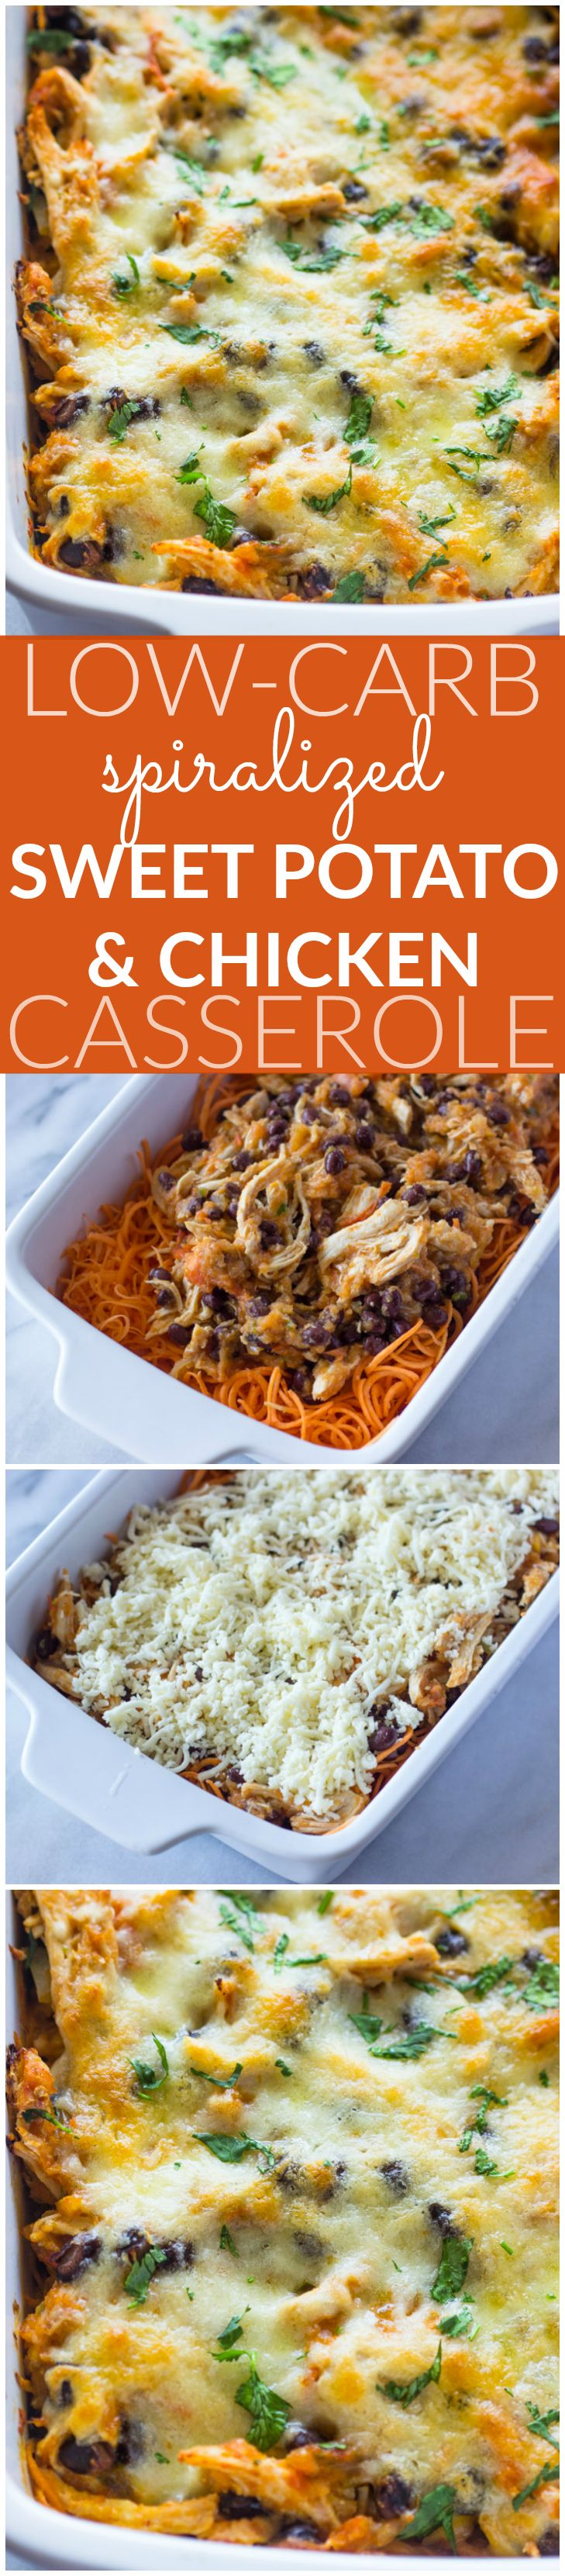 Tex-Mex Spiralized Sweet Potato & Chicken Casserole (Healthy, Low-Carb)   Gimme Delicious